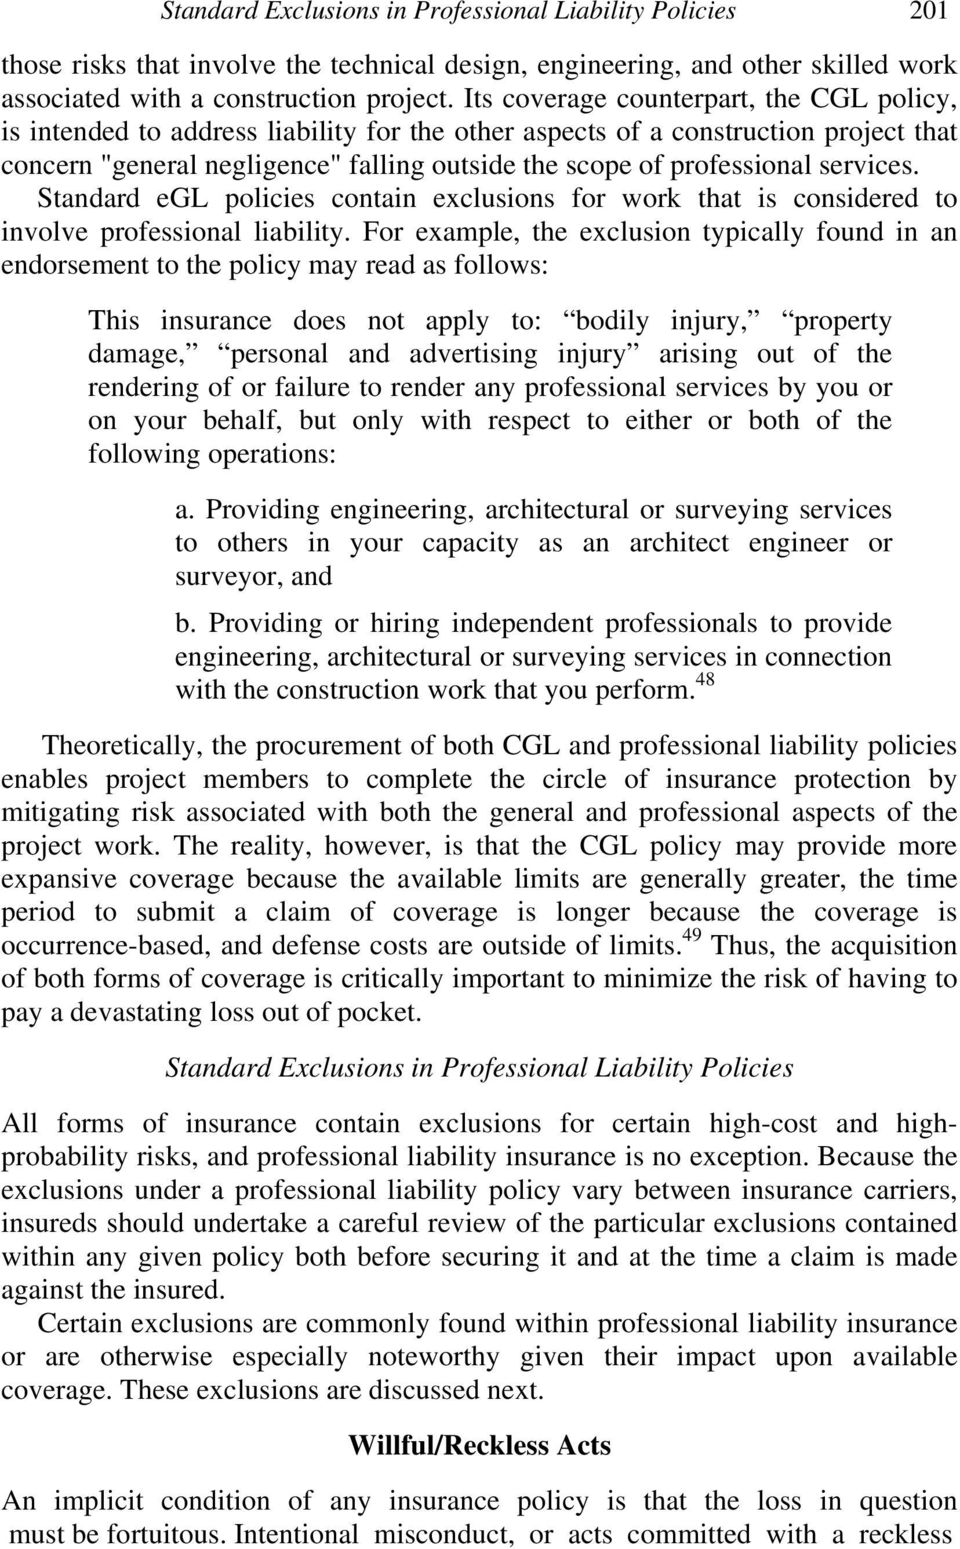 services. Standard egl policies contain exclusions for work that is considered to involve professional liability.